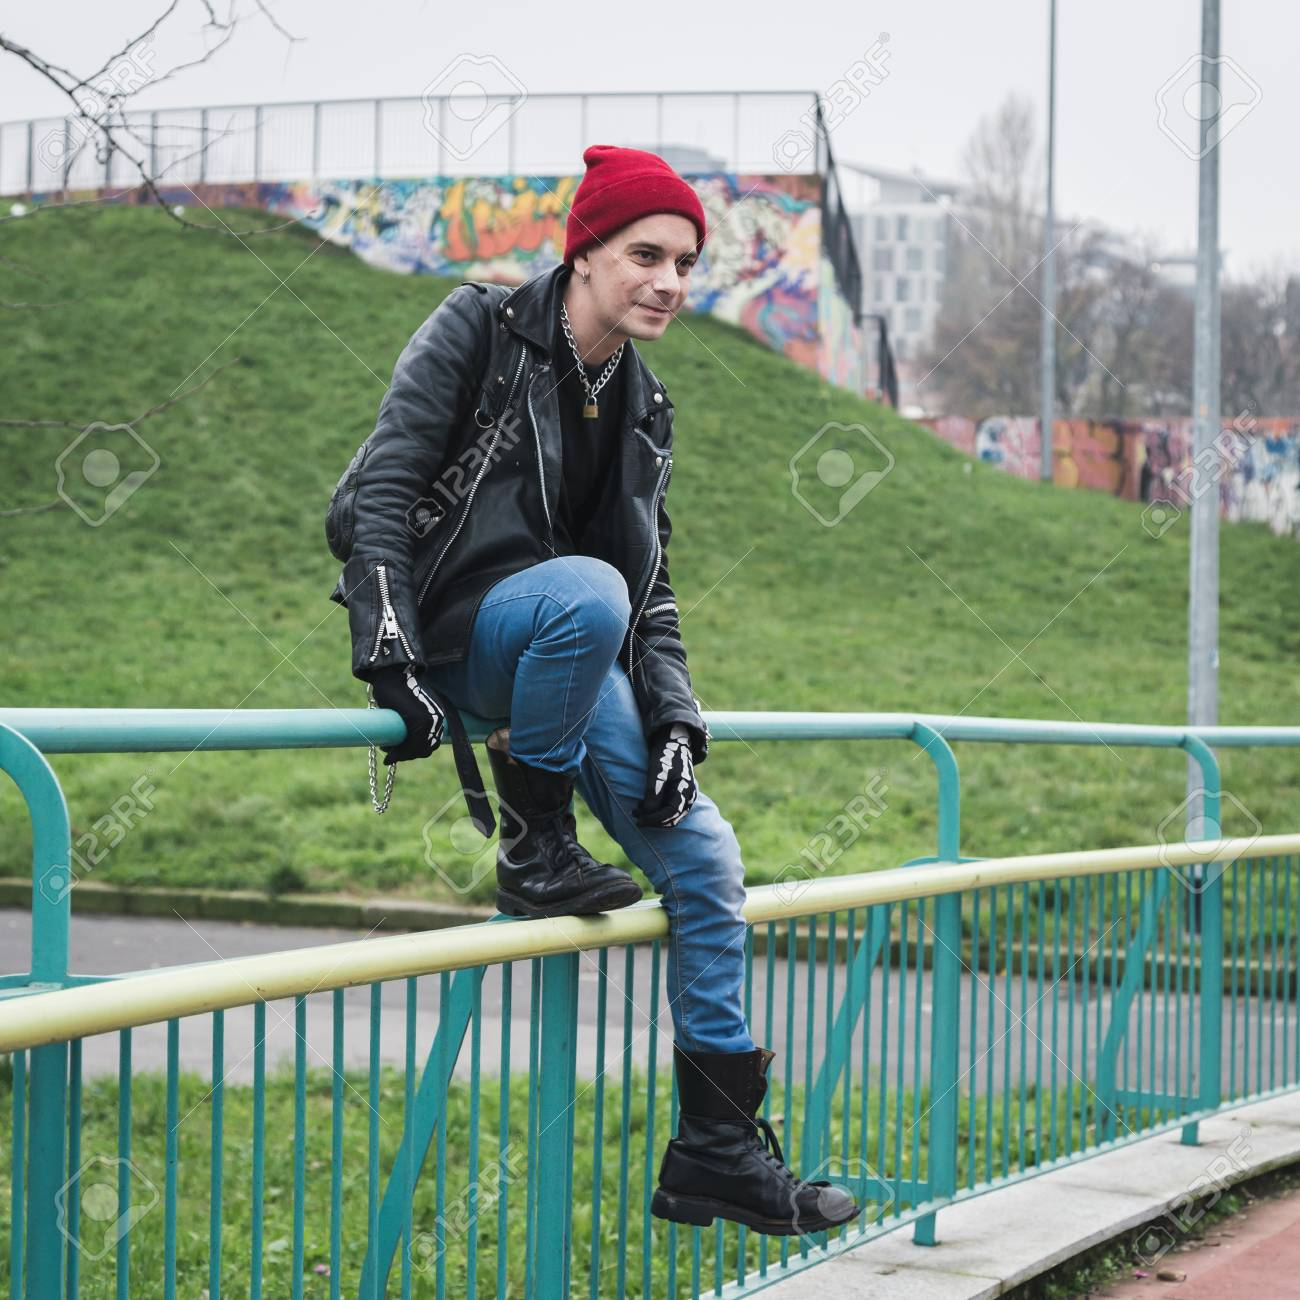 28a93a843d2 Punk guy with beanie posing in a city park Stock Photo - 34600757